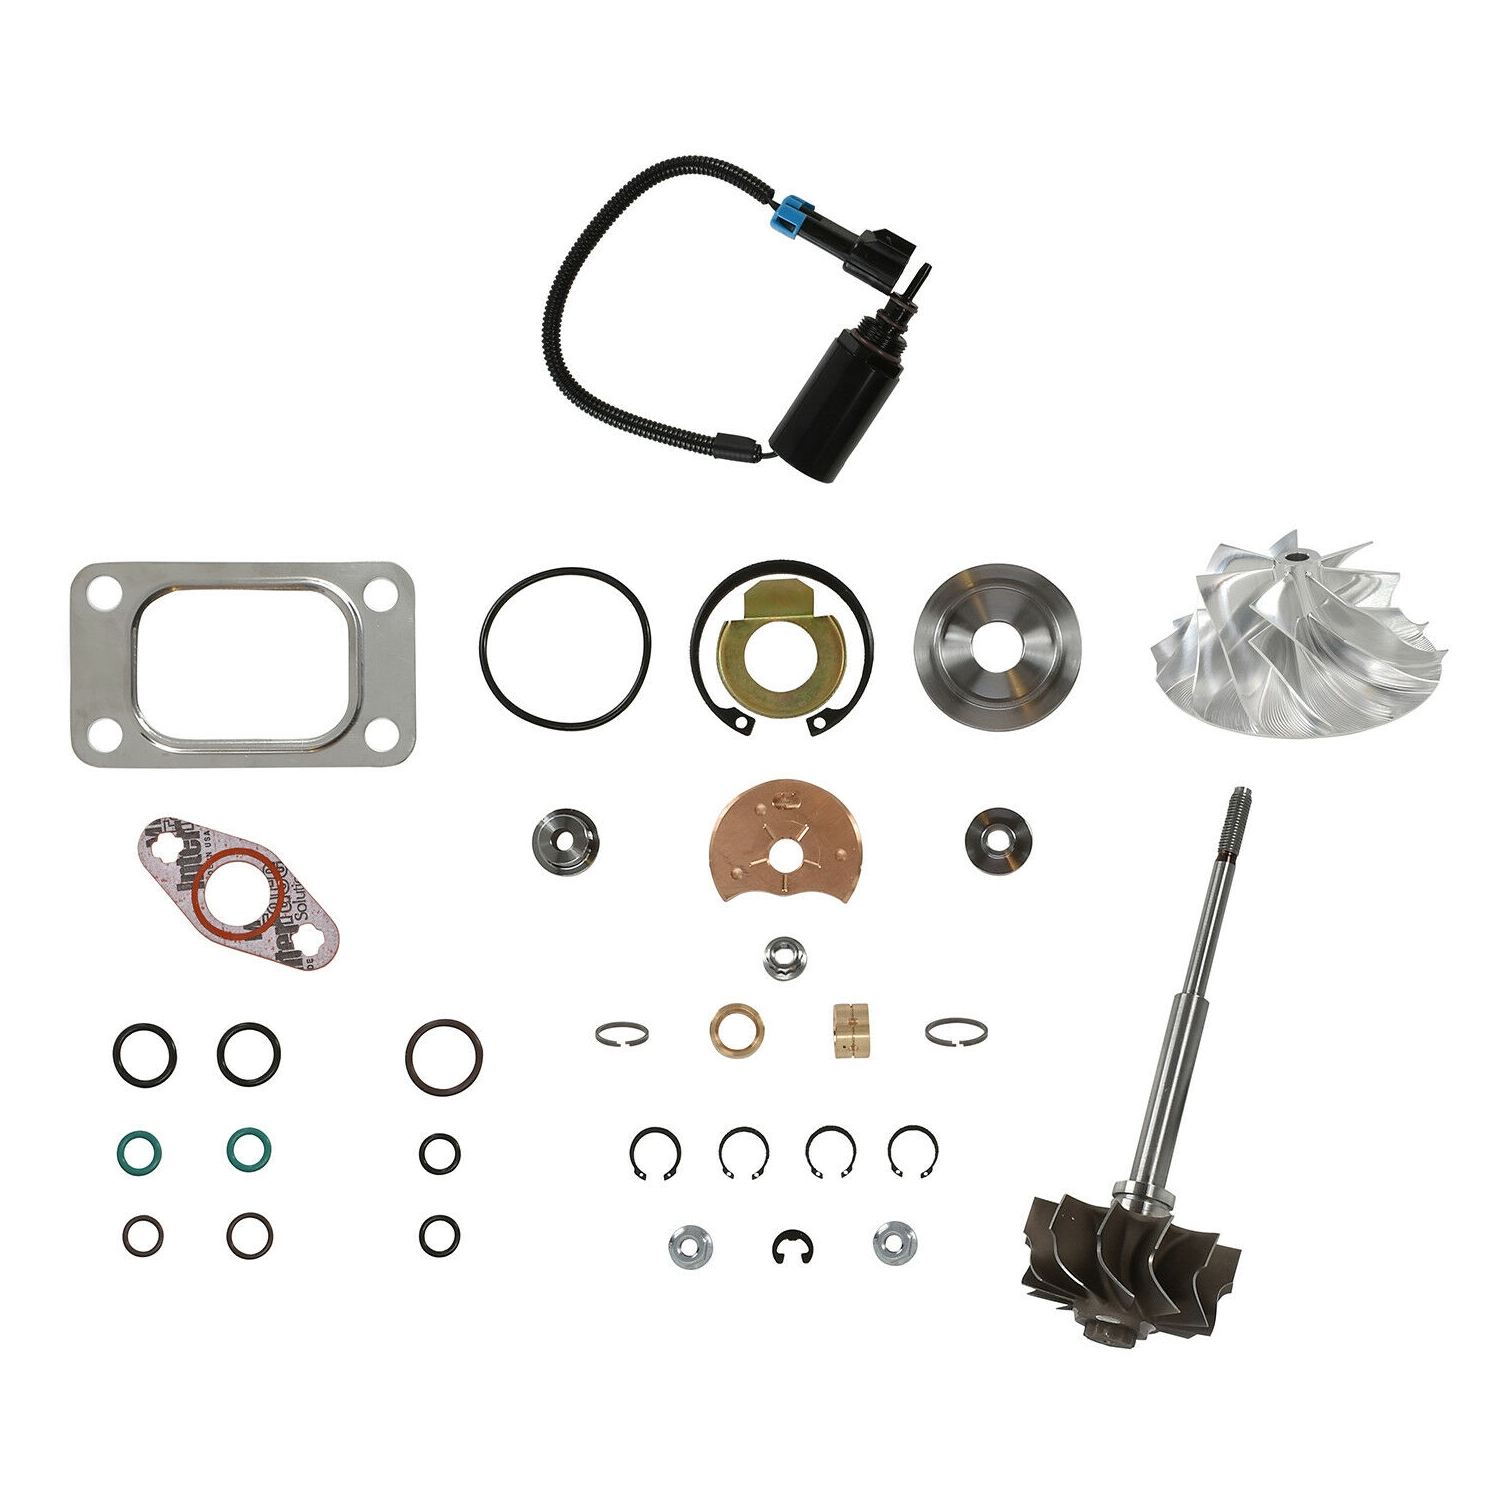 HE351CW Turbo Rebuild Kit Billet Wheel Turbine Shaft Wastegate Solenoid For 04.5-07 5.9L ISB Dodge Ram Cummins Diesel